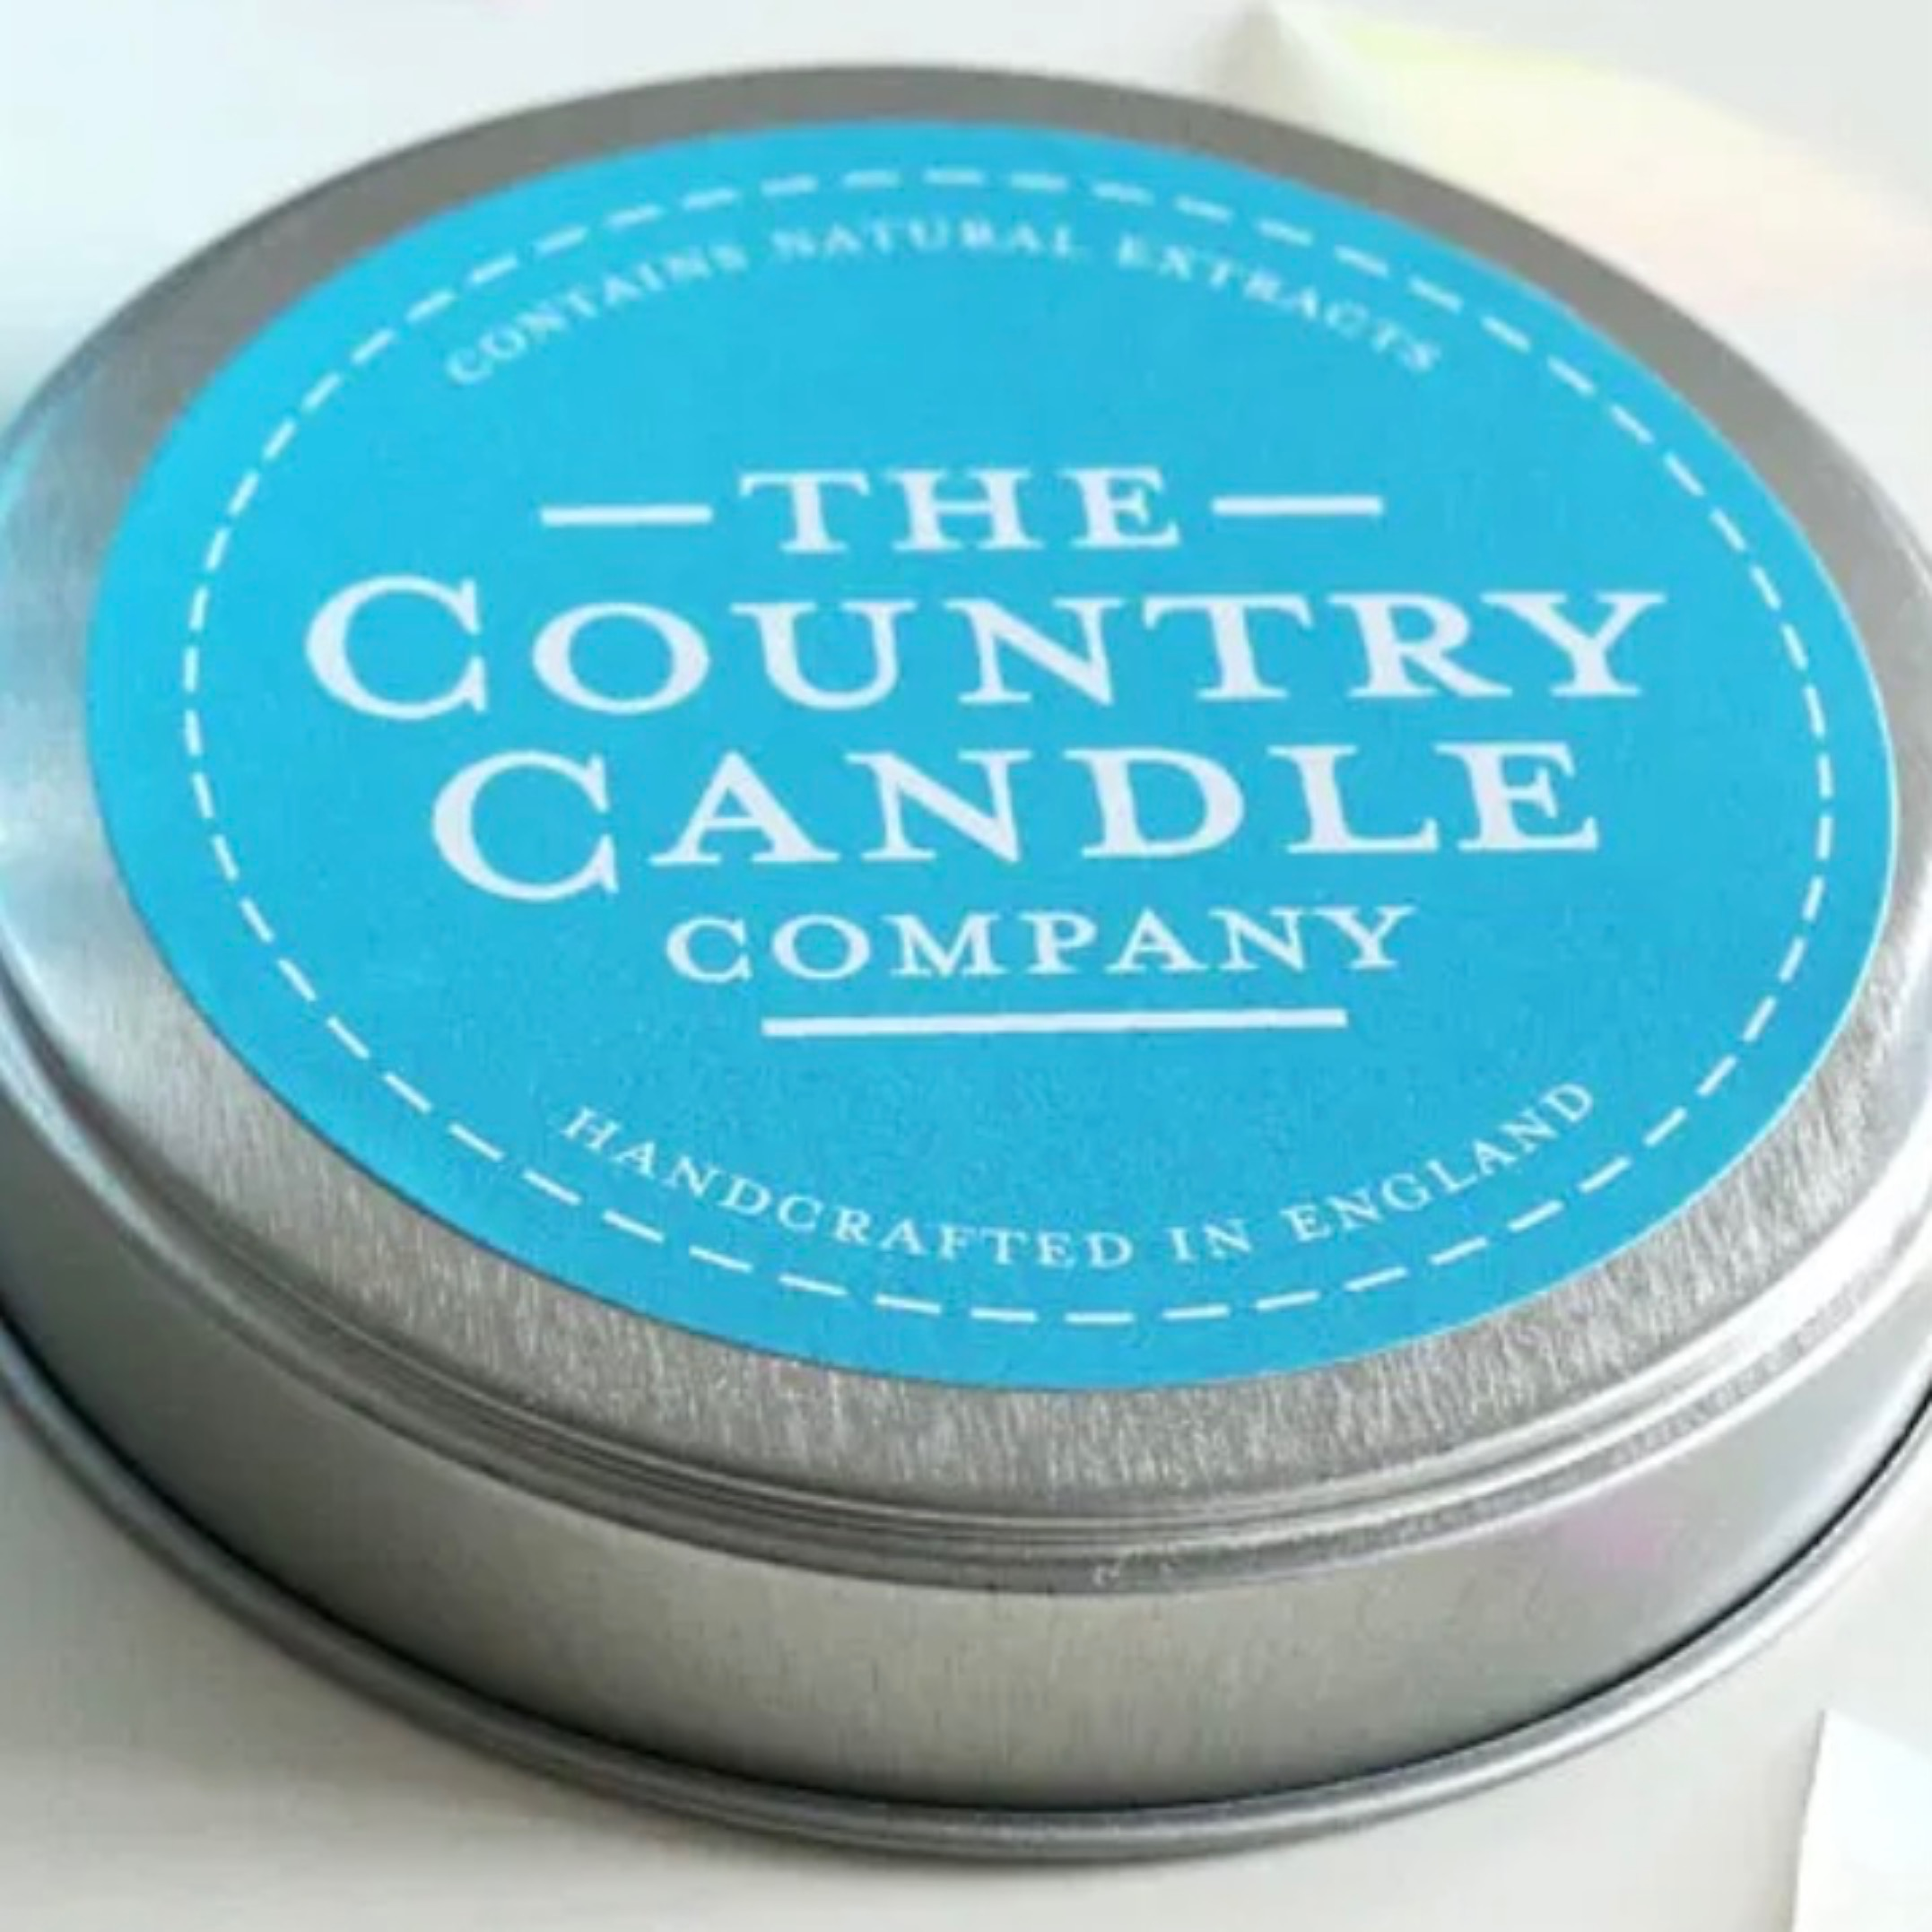 * The Country Candle Company *